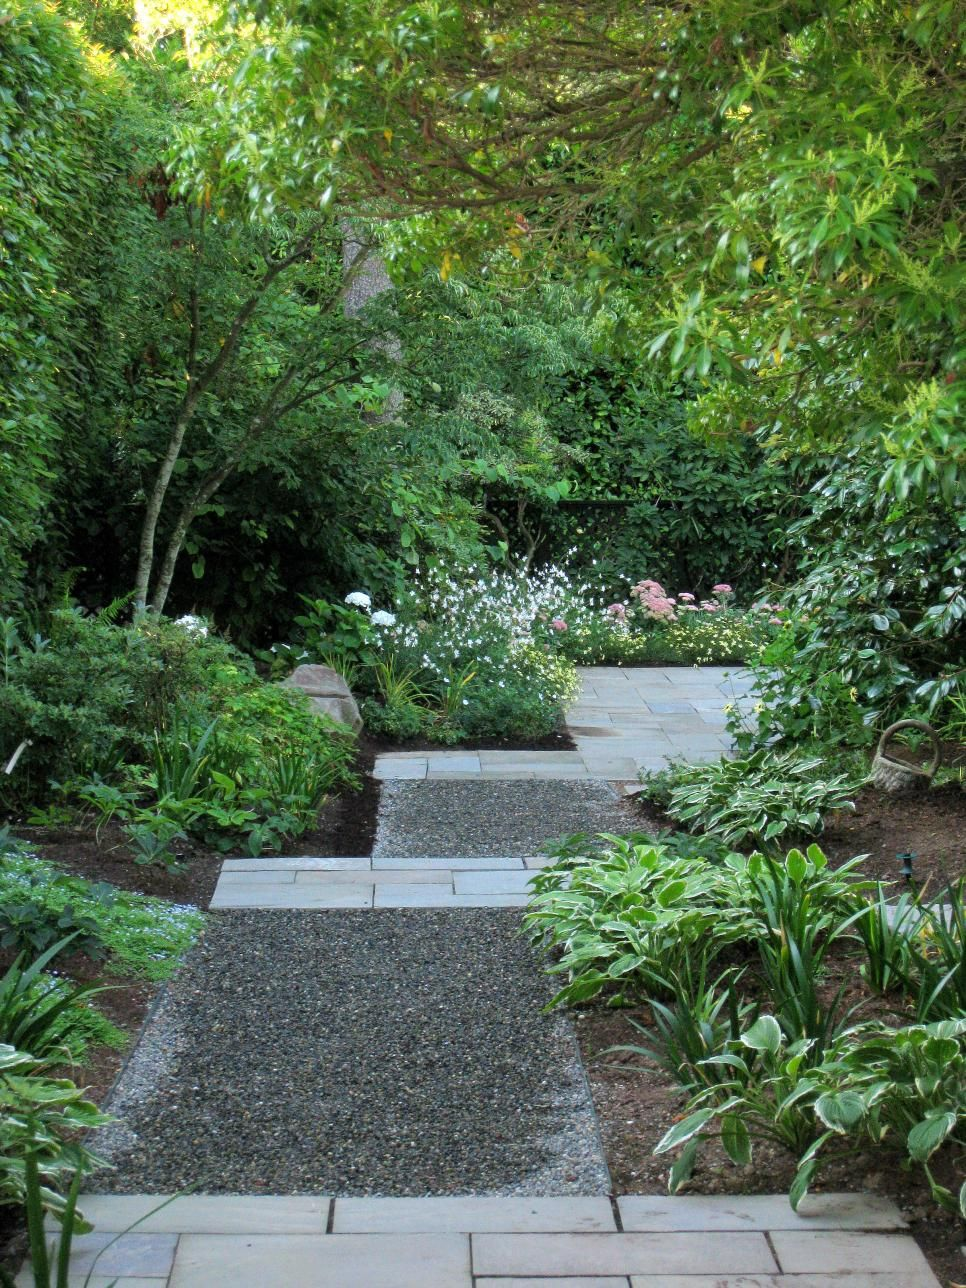 How to make a garden path with gravel - Garden Paths Act As The Backbone Of Landscape Design Providing A Sense Of Structure And